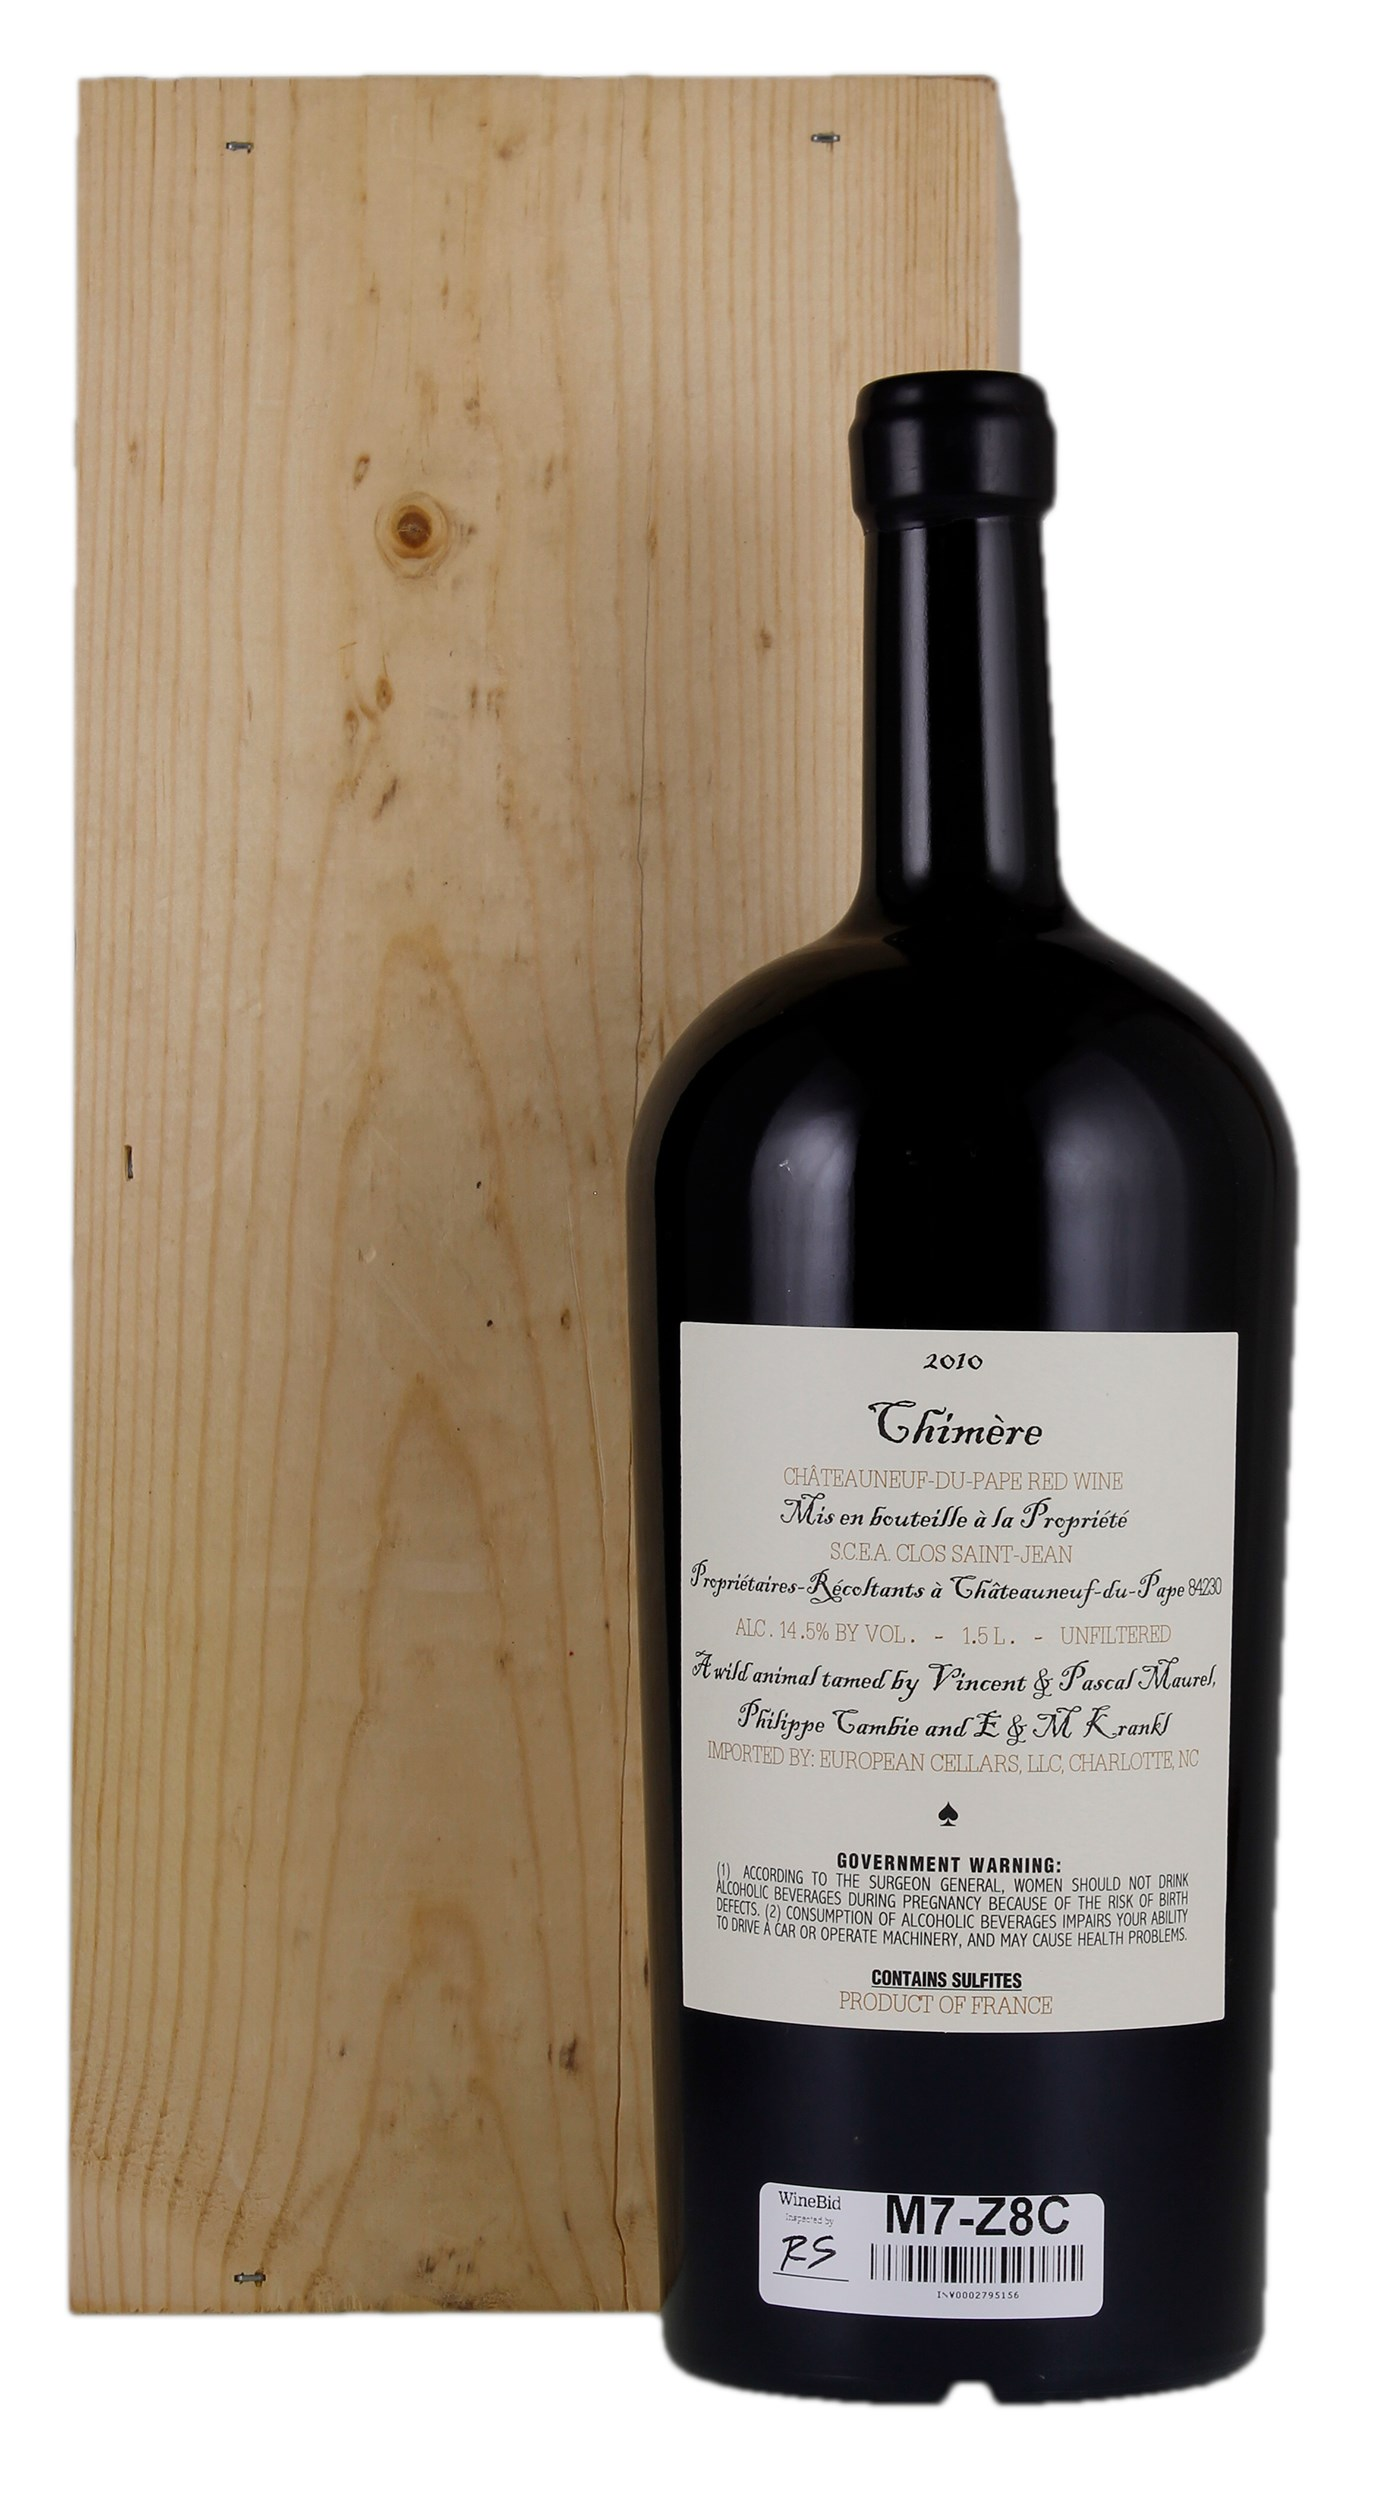 /BuyWine/Item/Auction/275192/2010-Chimere-15ltr-1-bottle-Lot-Wood-Case.  sc 1 st  WineBid & Chimere 2010 Red Wine from France - WineBid